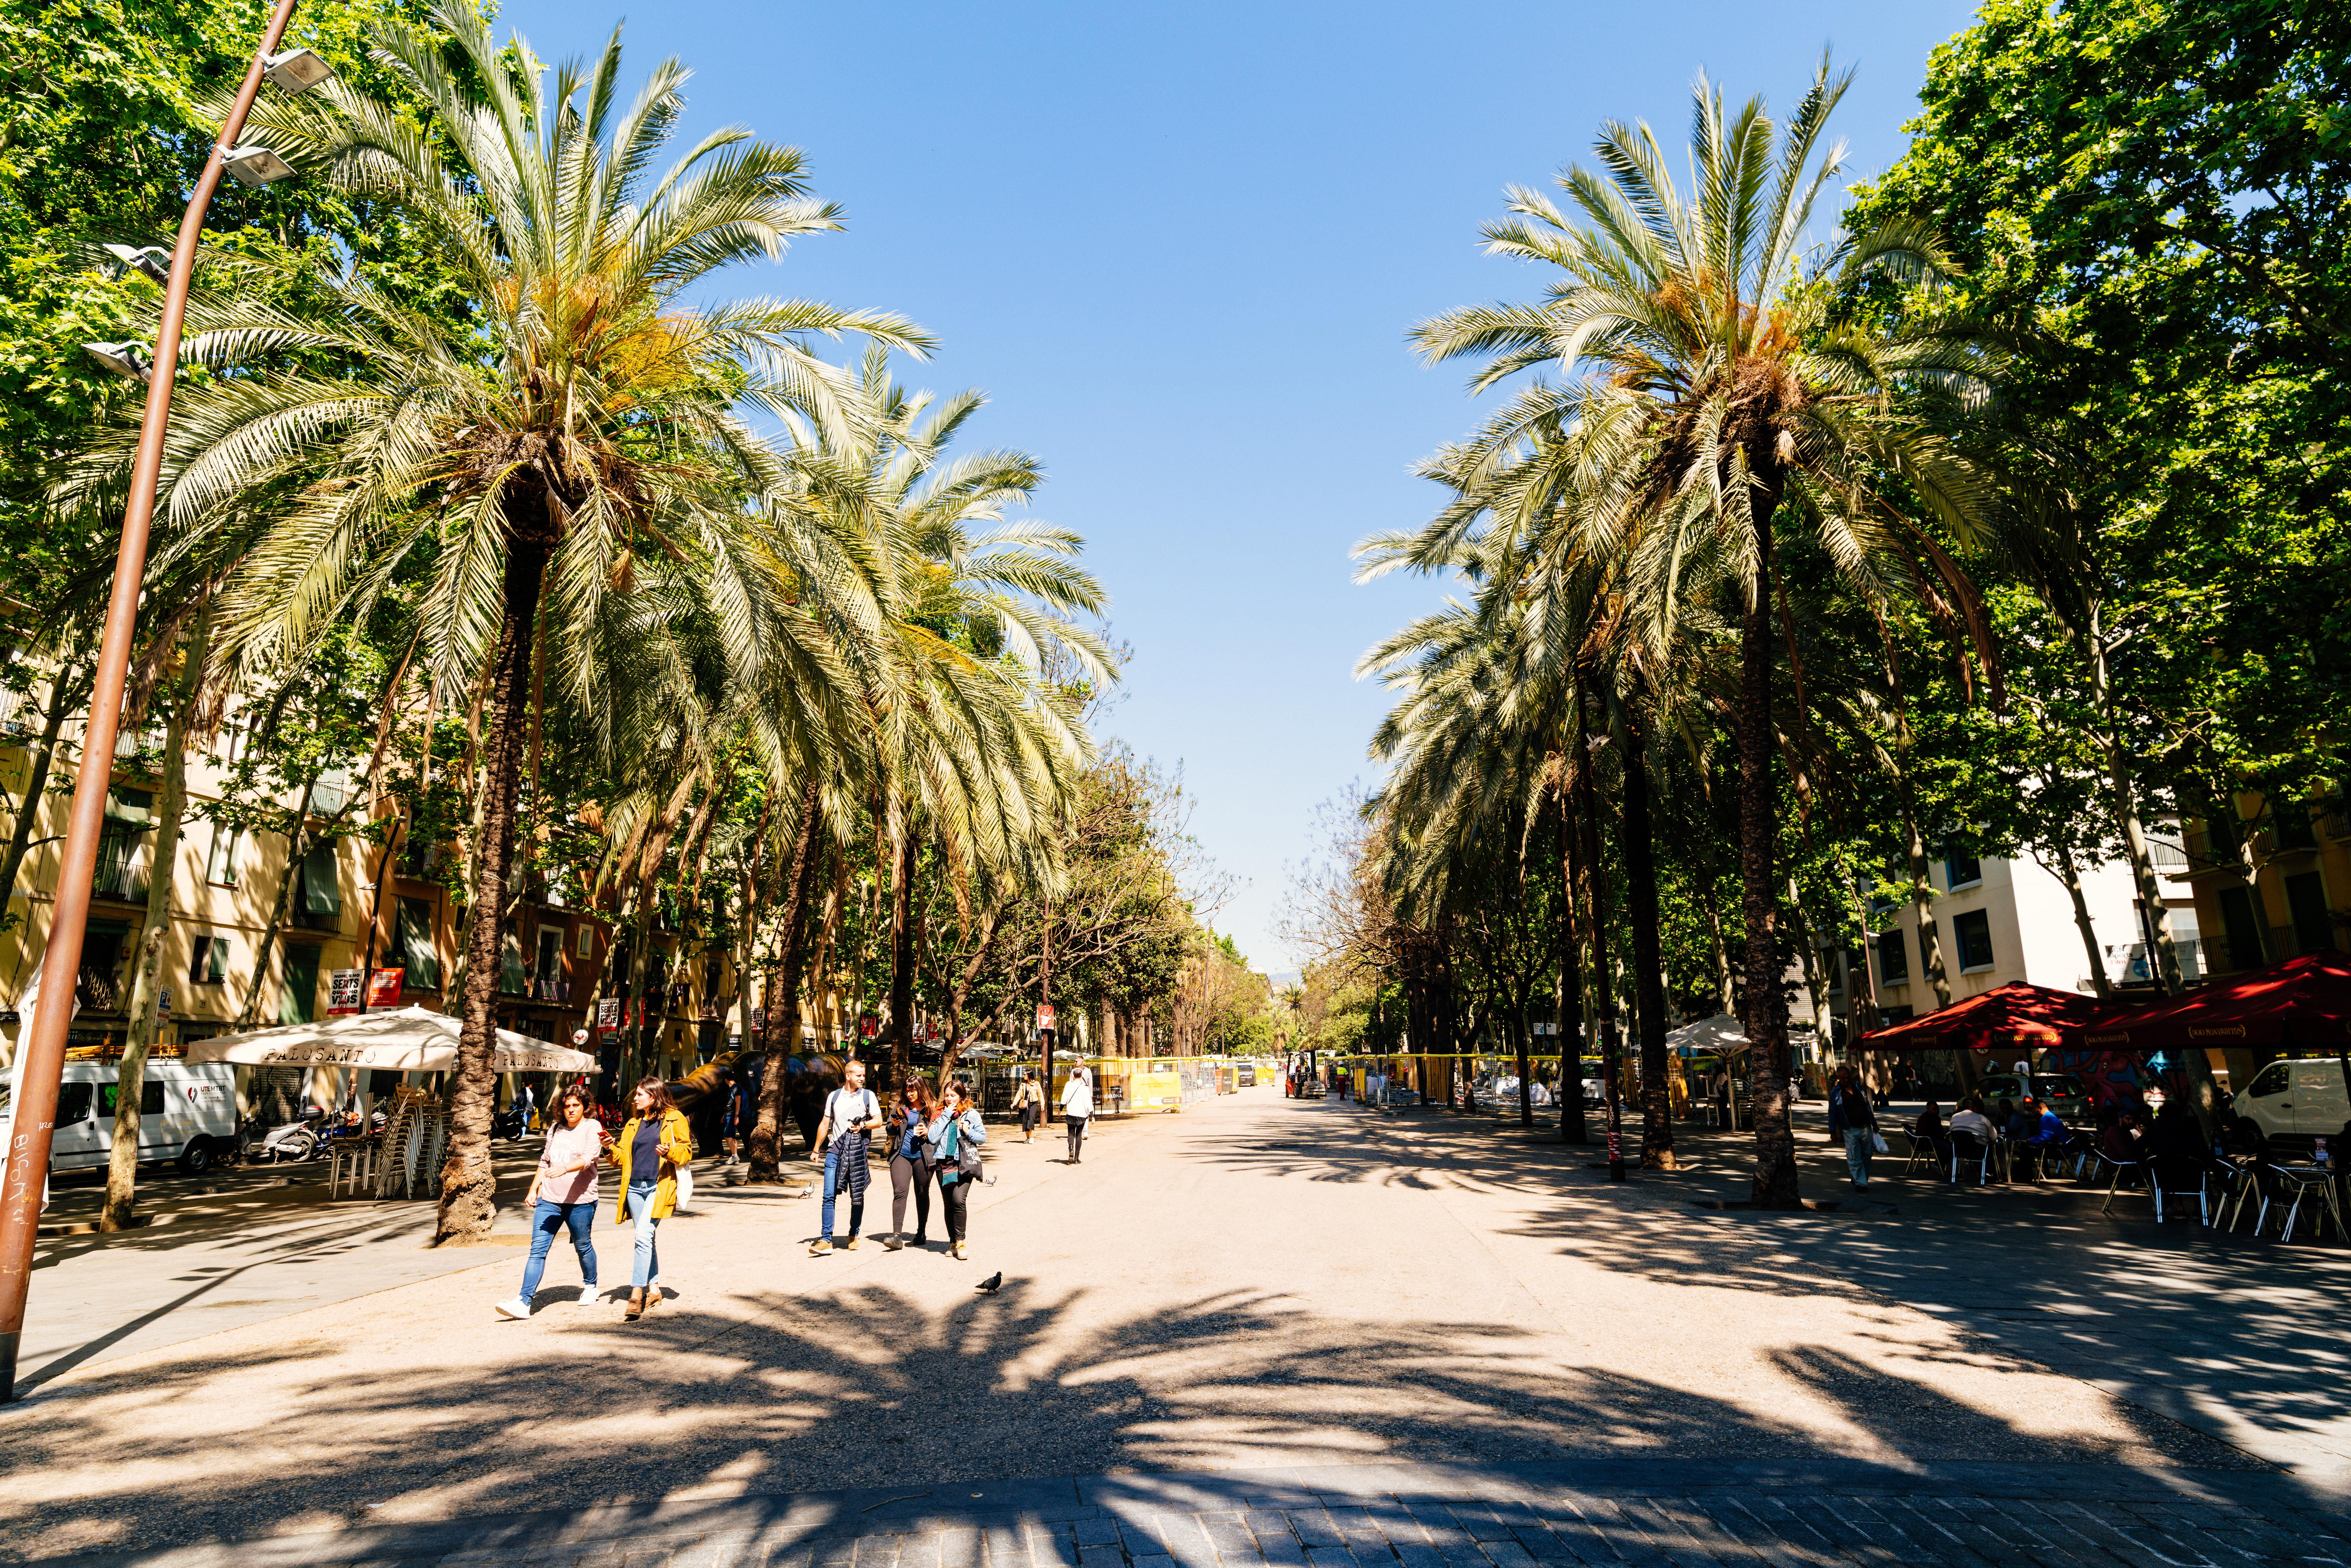 Palm tree lined pedestrian street in the Raval district of Barcelona